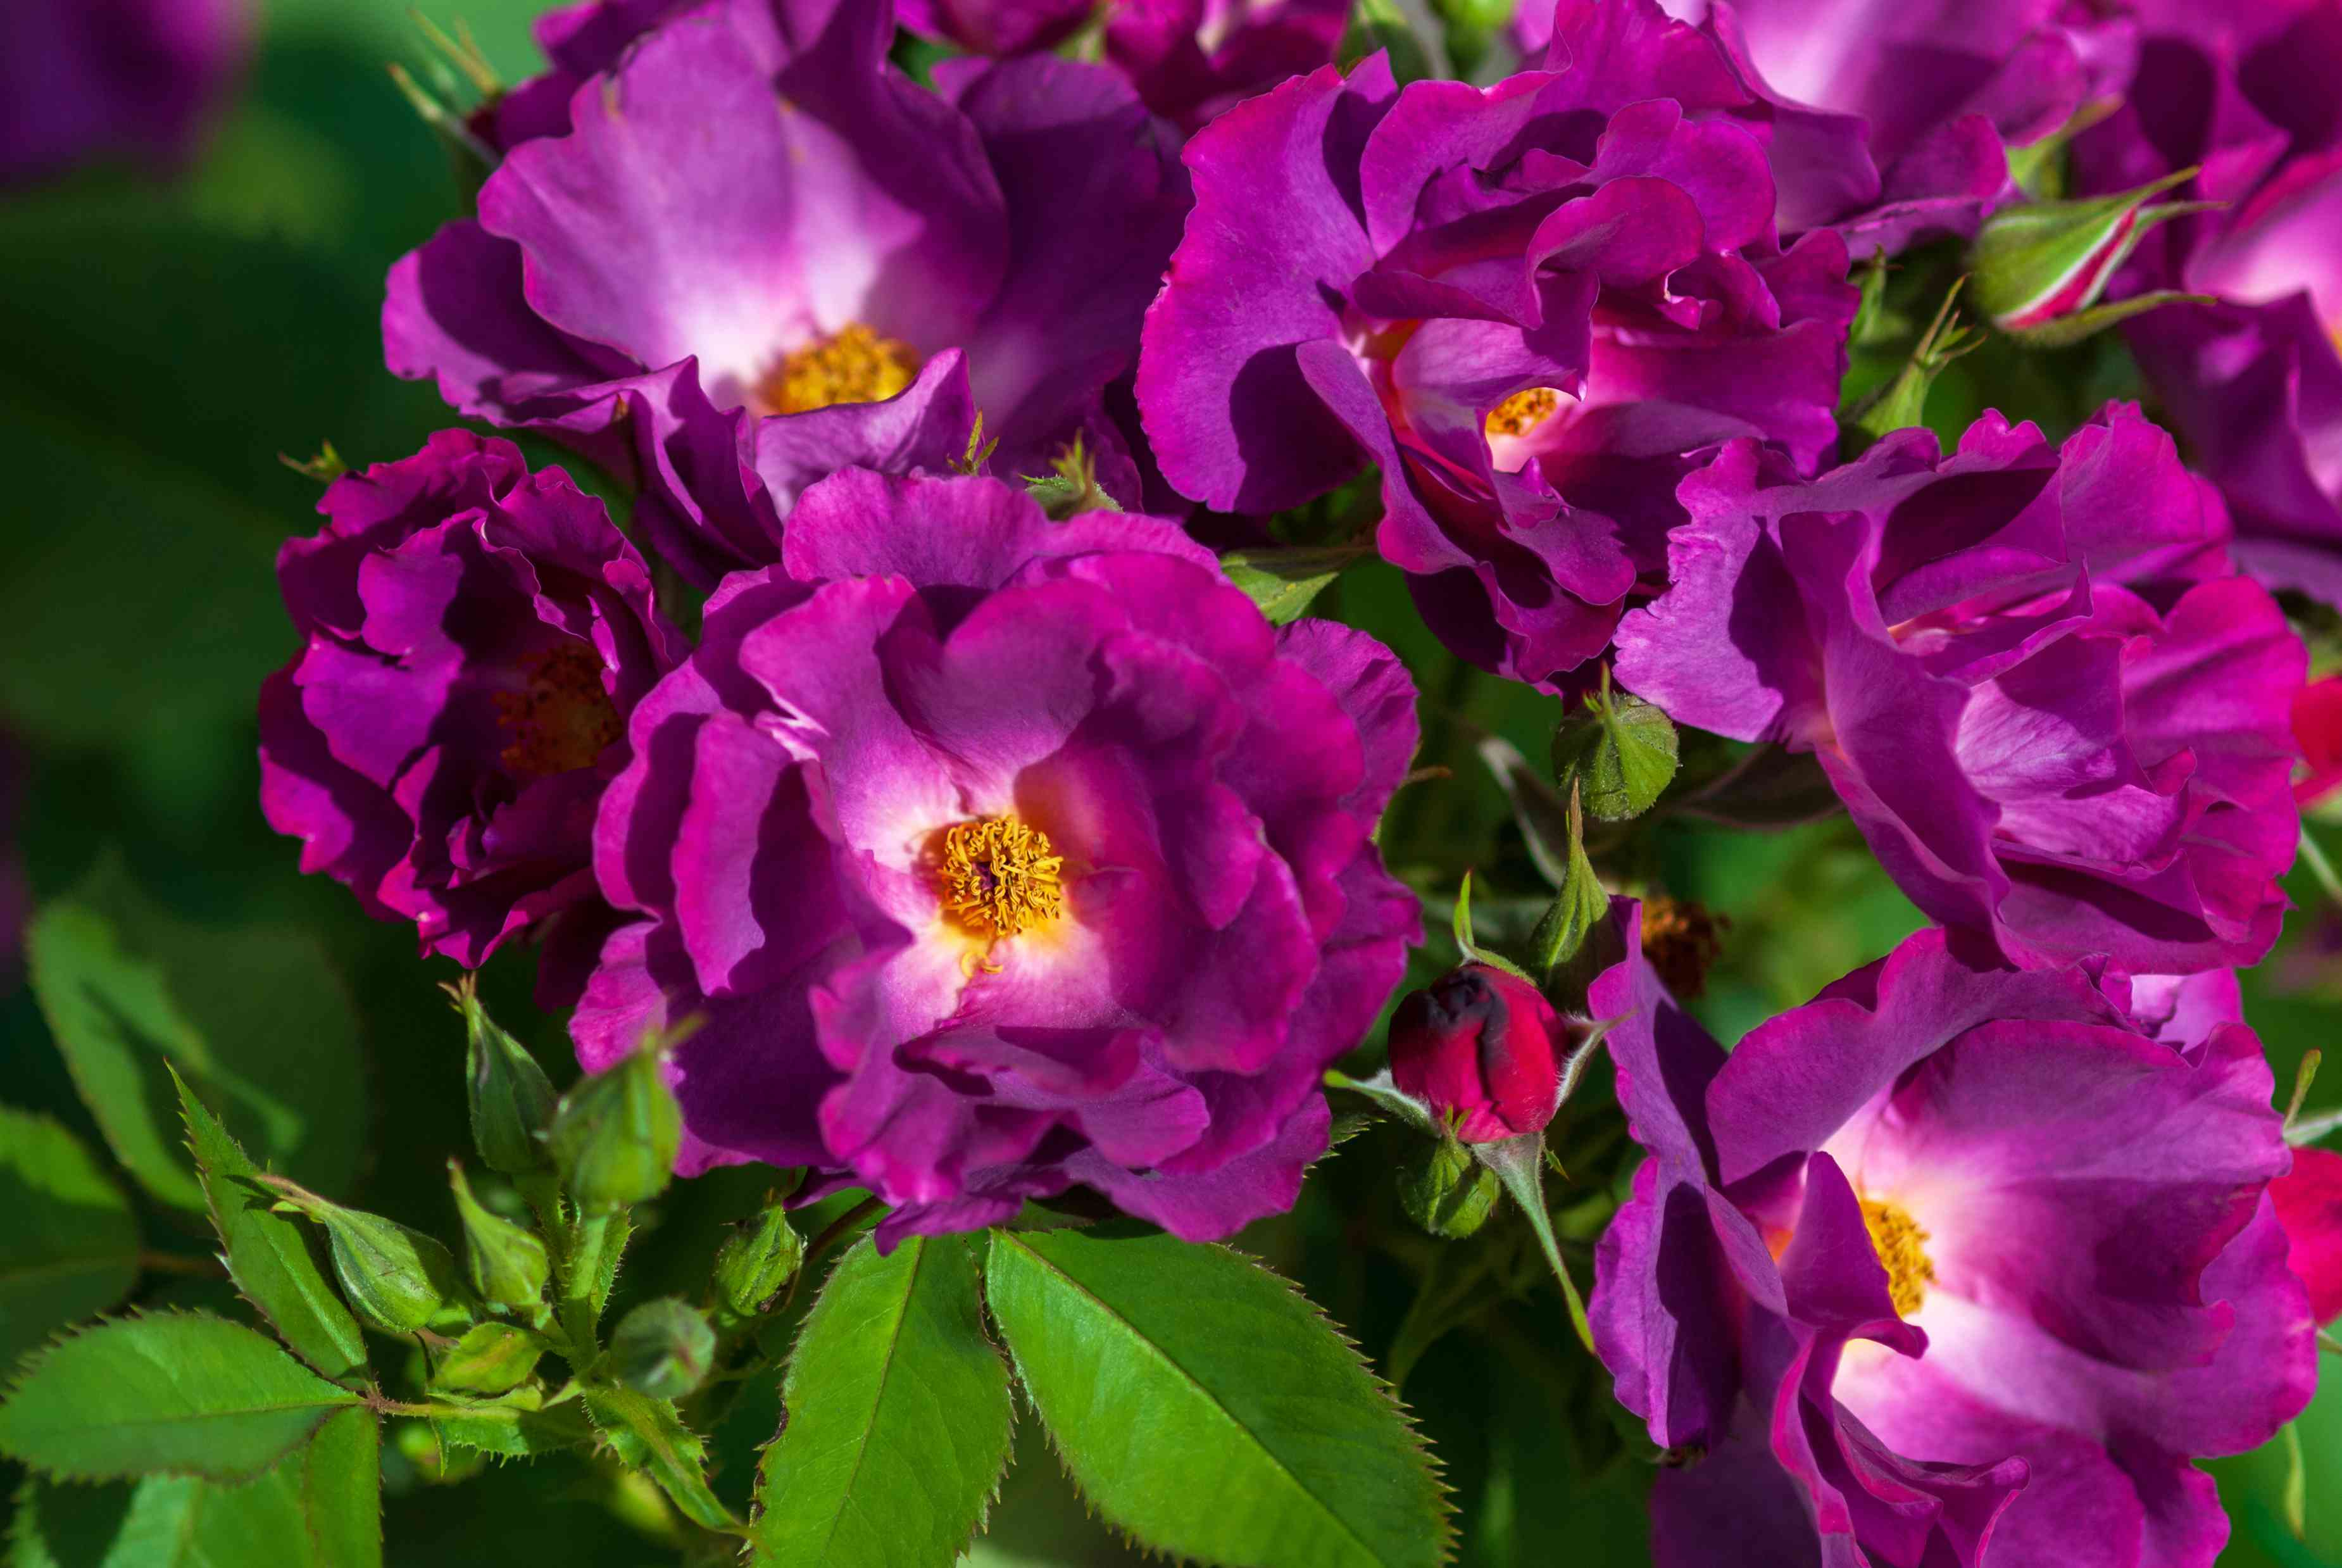 Rhapsody in blue rose plant with vivid purple and ruffled flowers in sunlight closeup